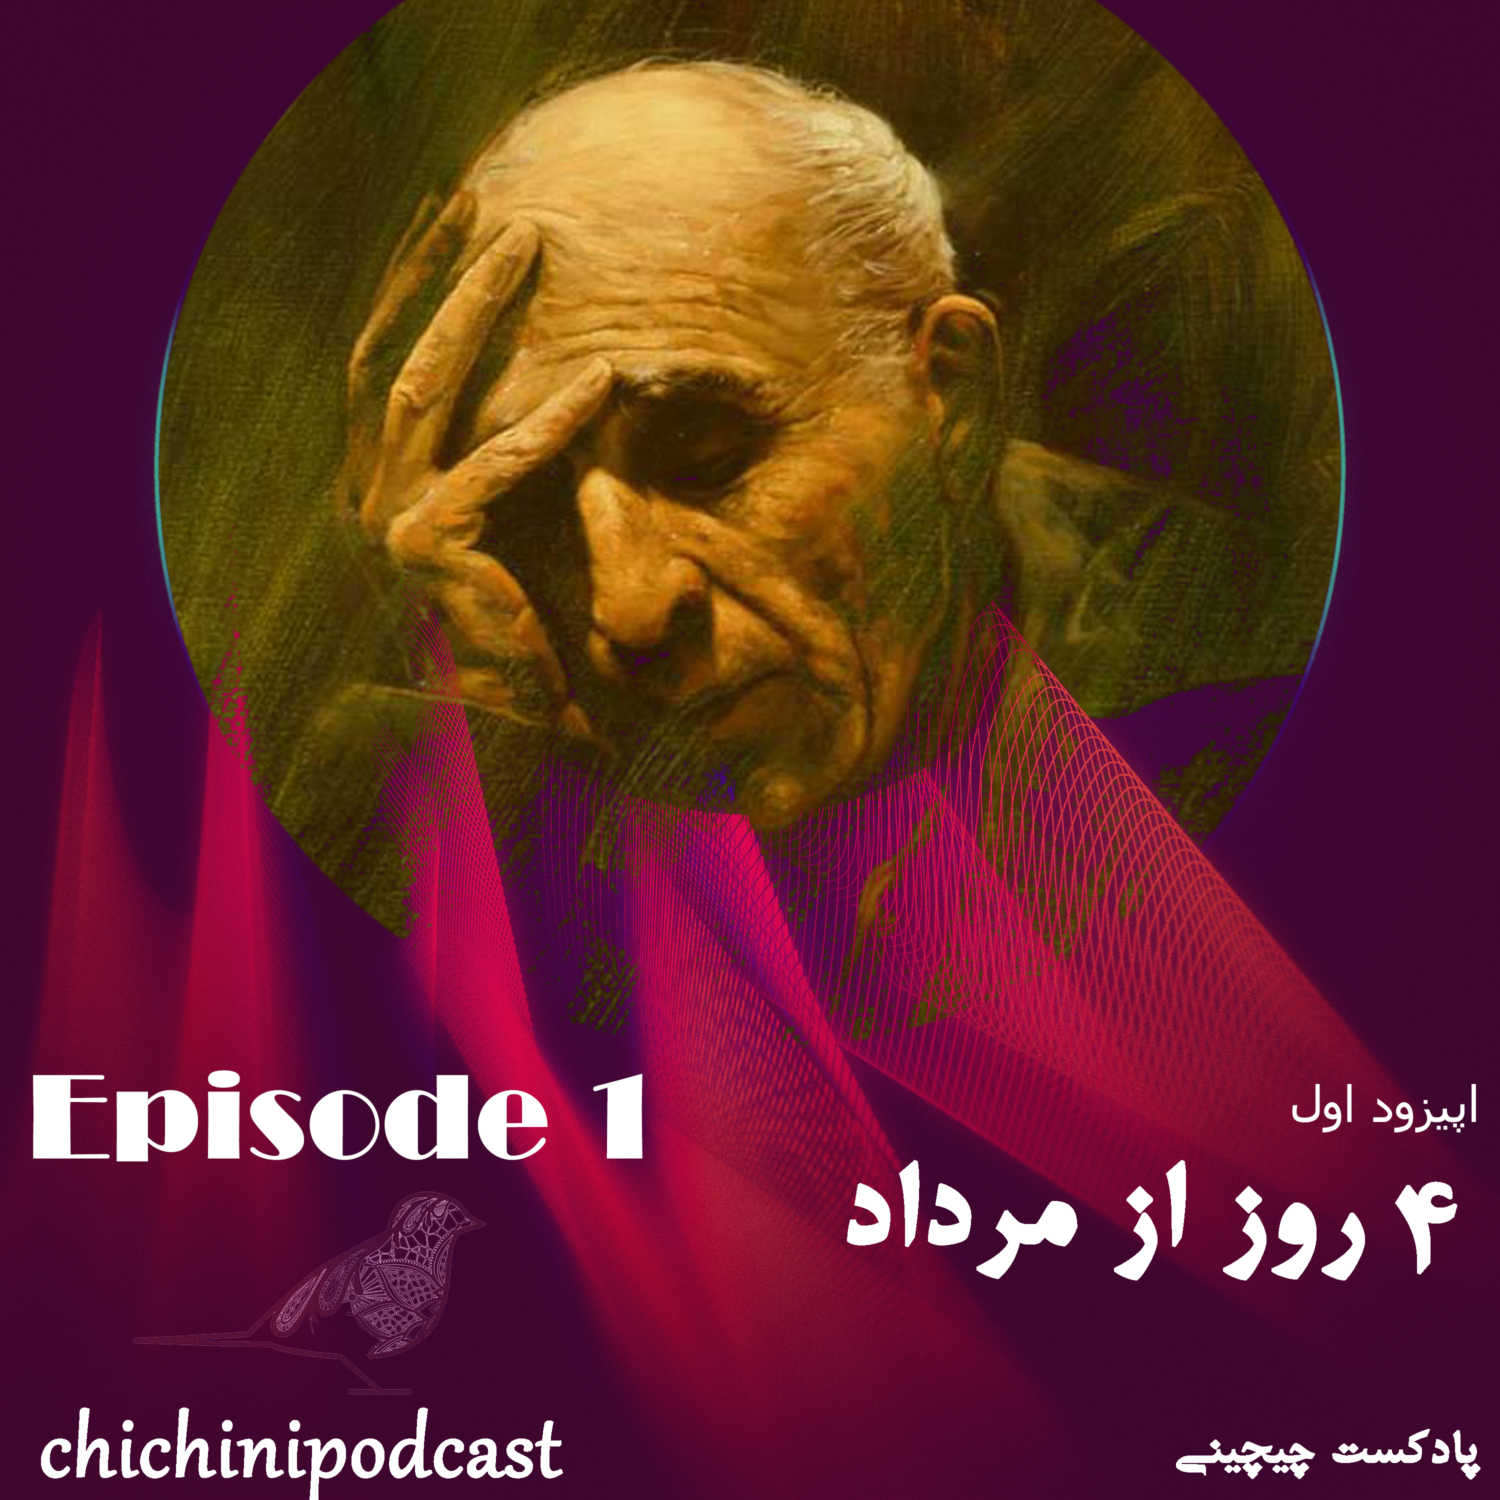 episode 1 4 rooz az mordad mp3 image یک : 4 روز از مرداد